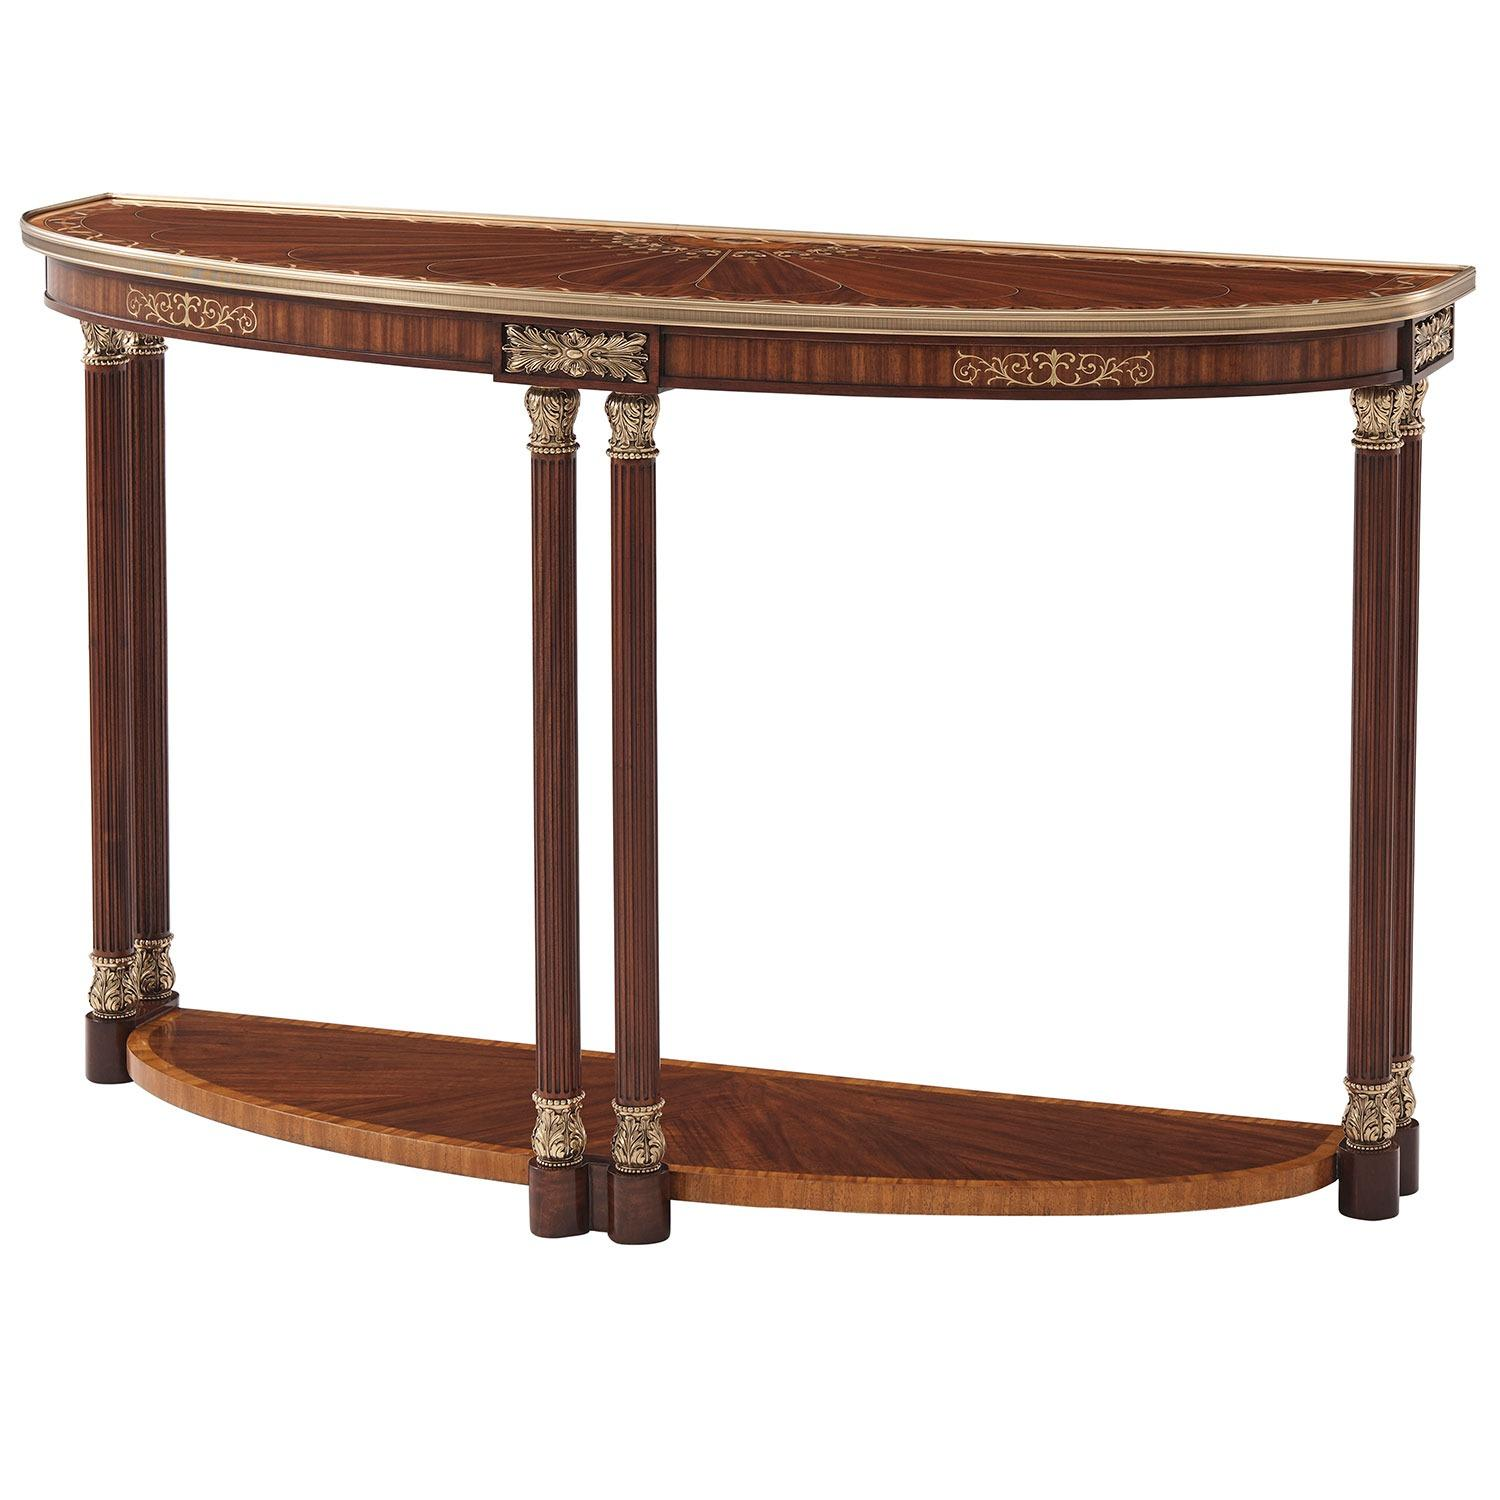 Demilune Mahogany  Console Table with Mother of Pearl Inlay